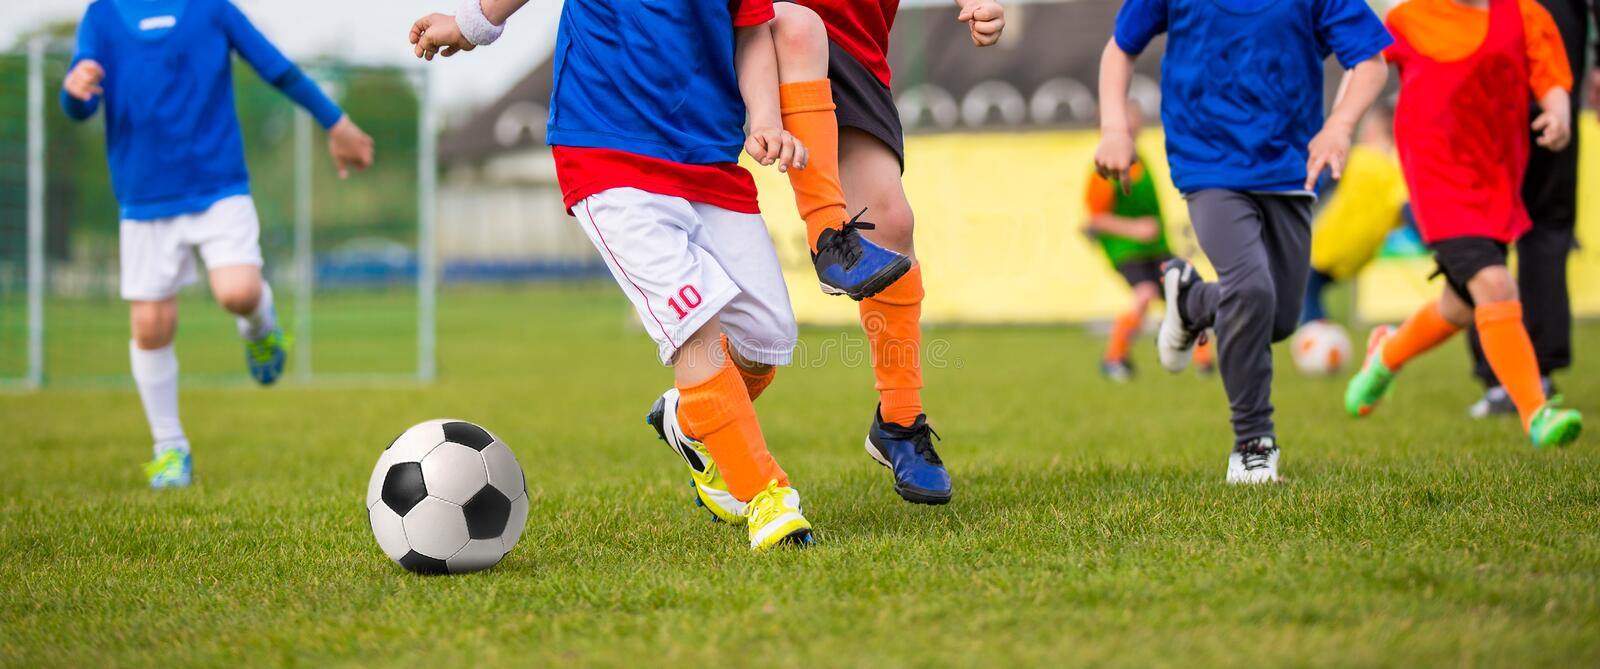 Children playing soccer football match. Sport soccer horizontal stock photography